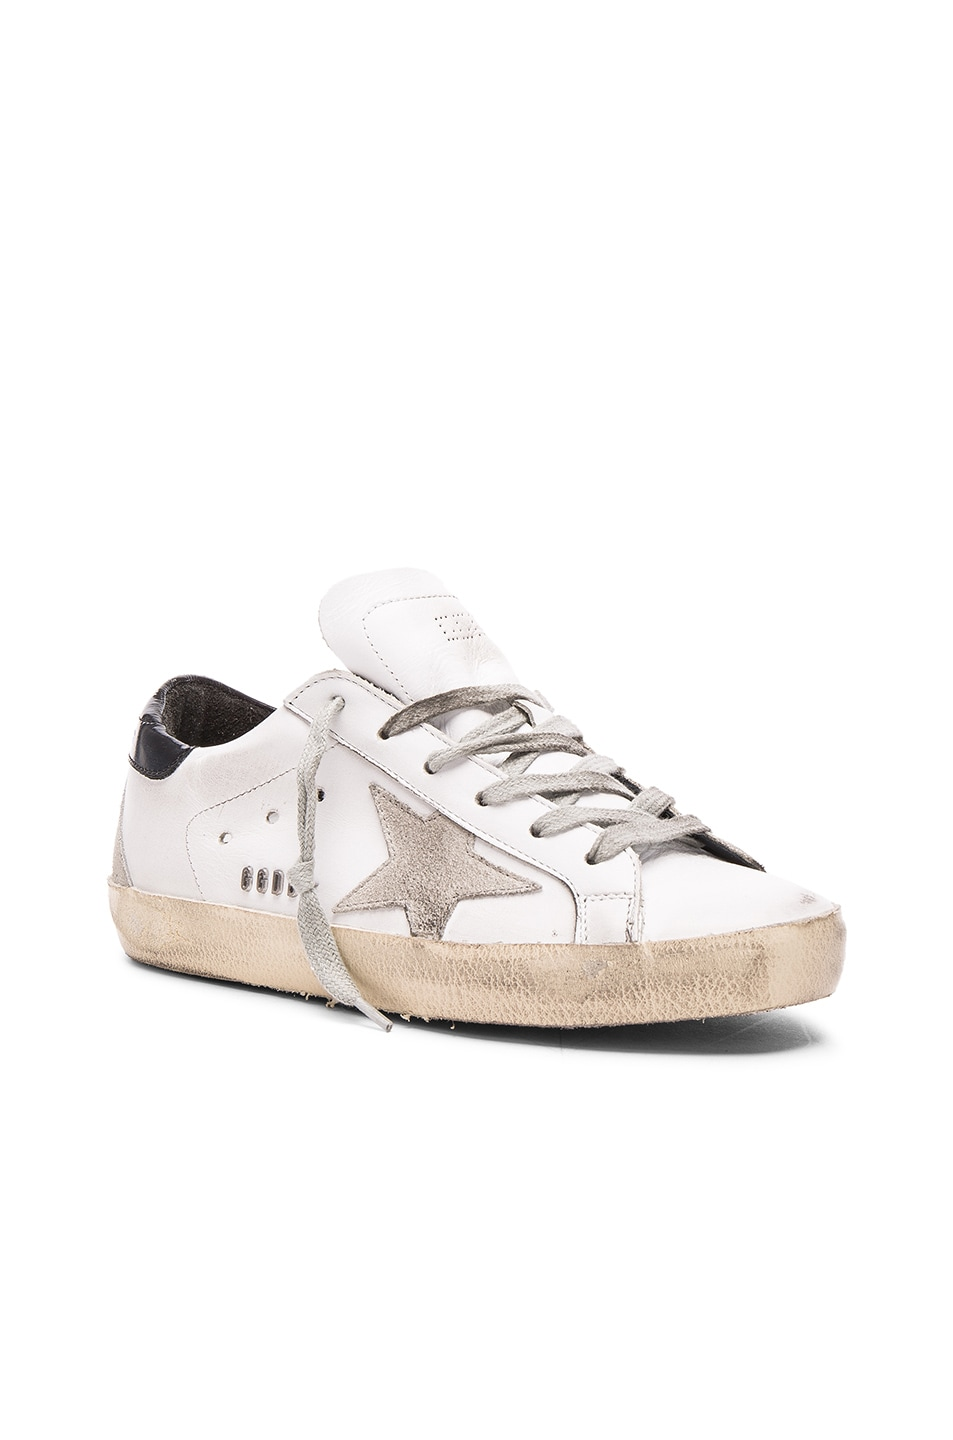 Image 2 of Golden Goose Leather Superstar Low Sneakers in White, Black & Cream Metal